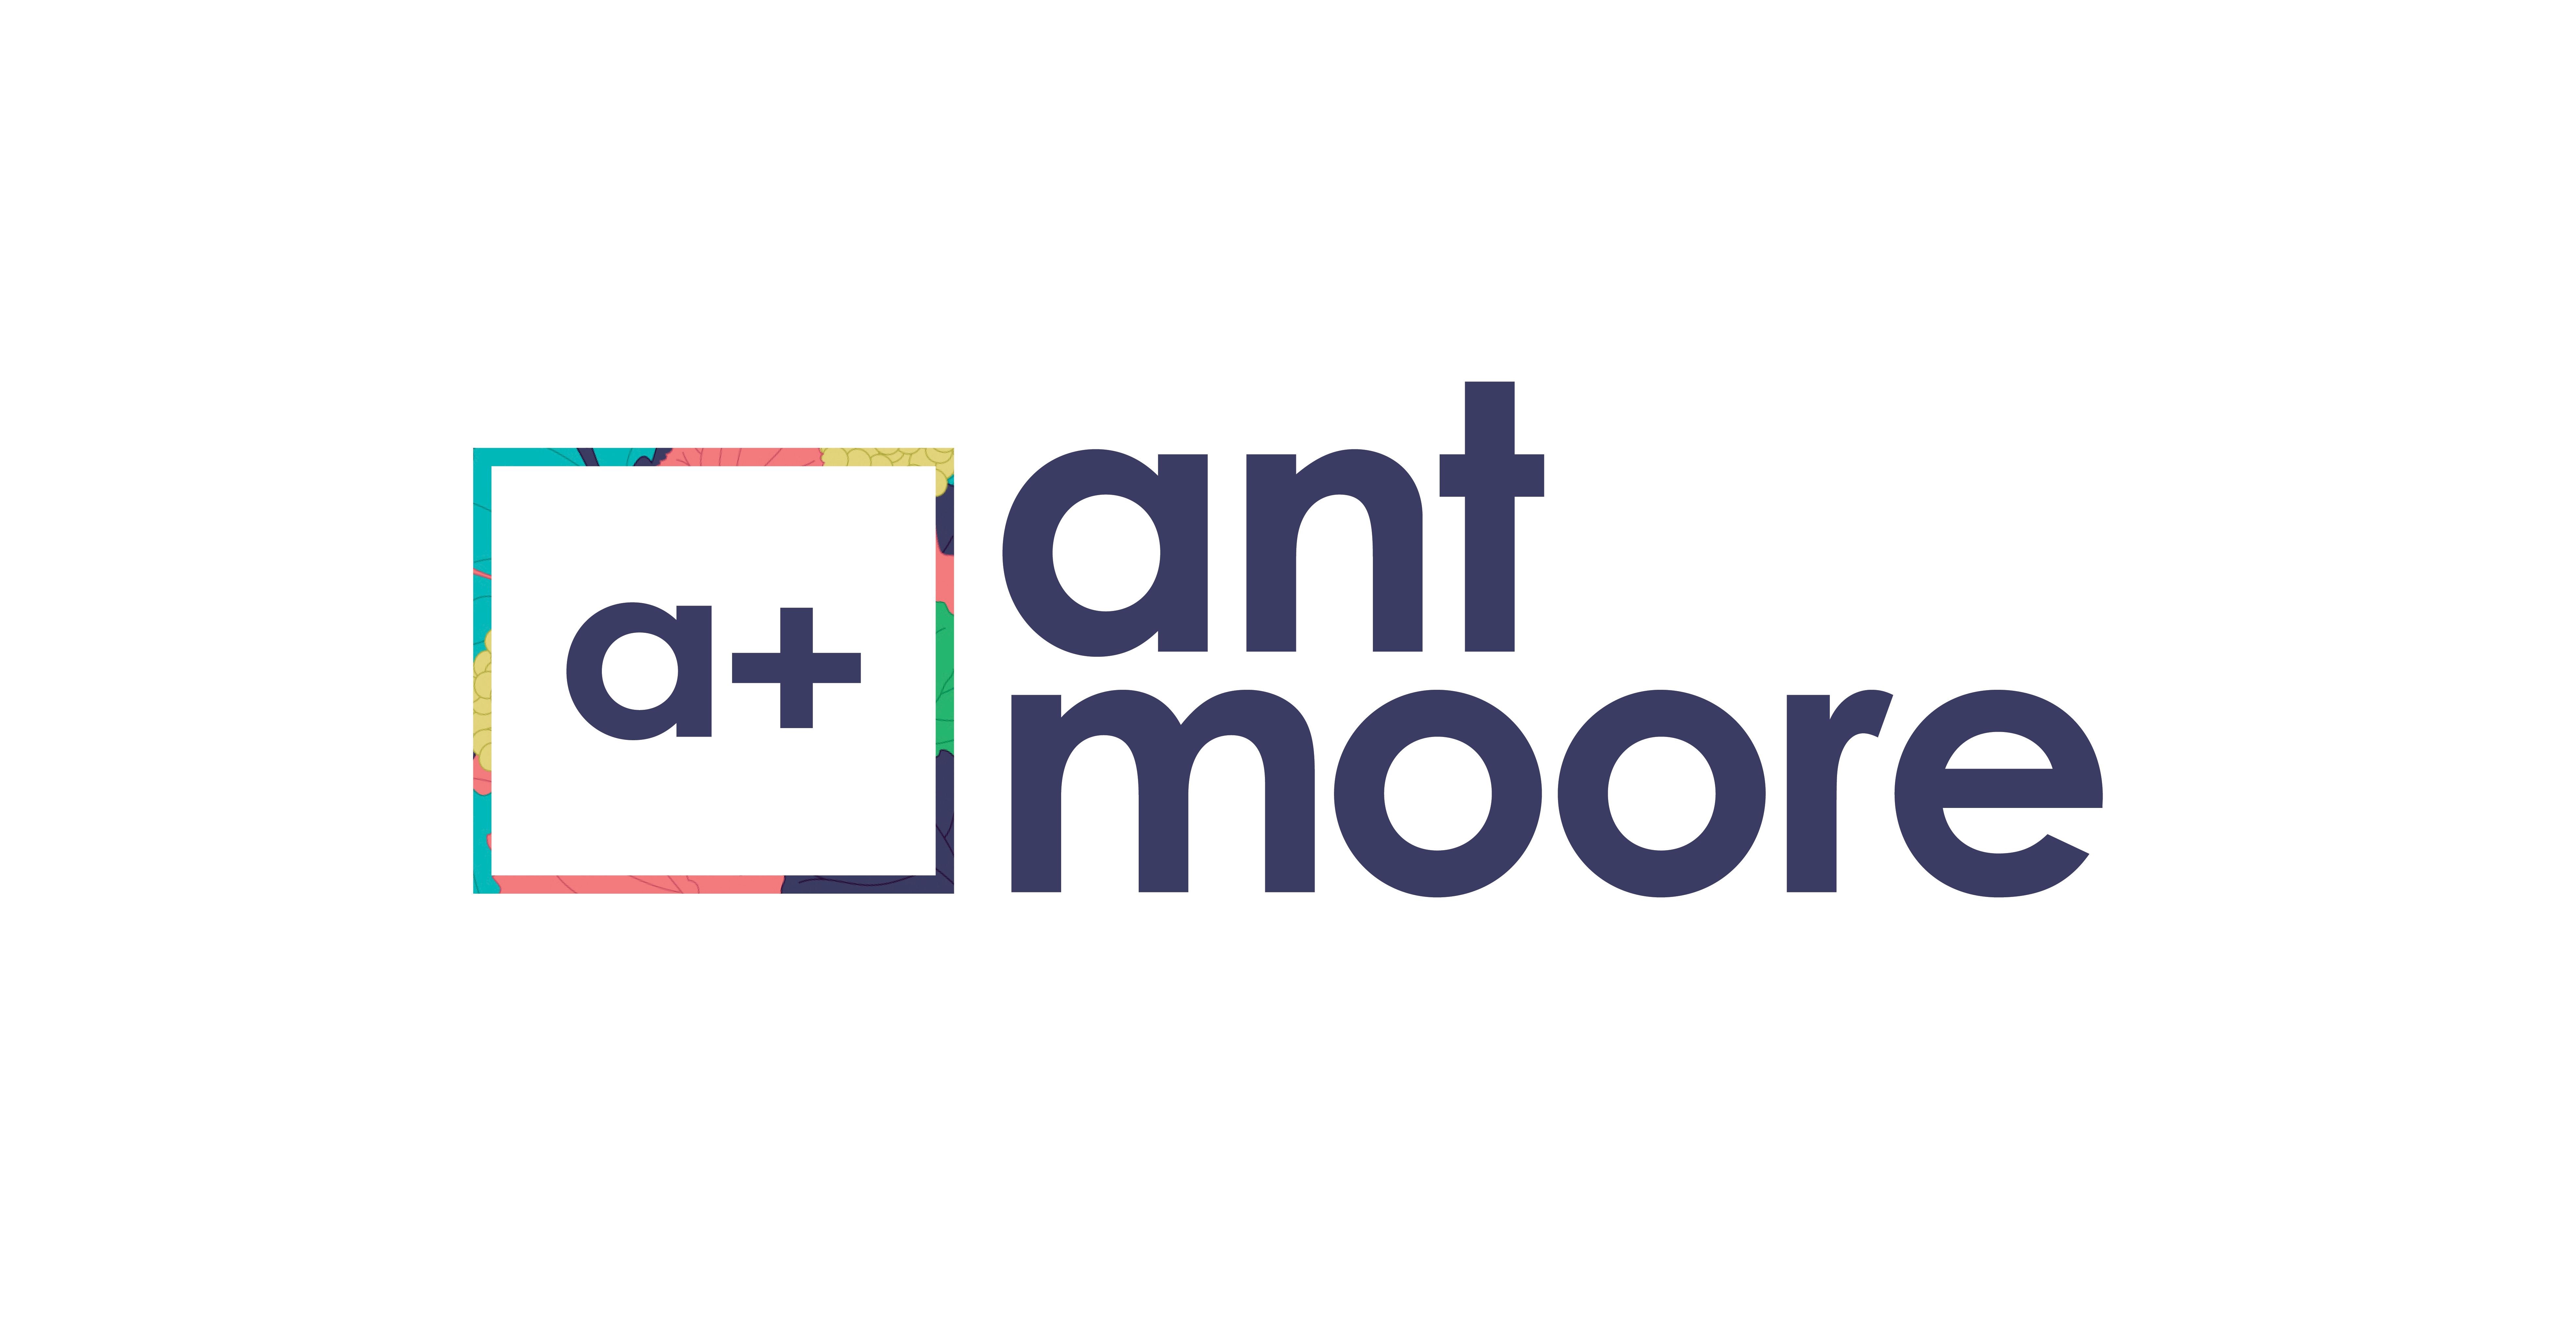 Ant Moore